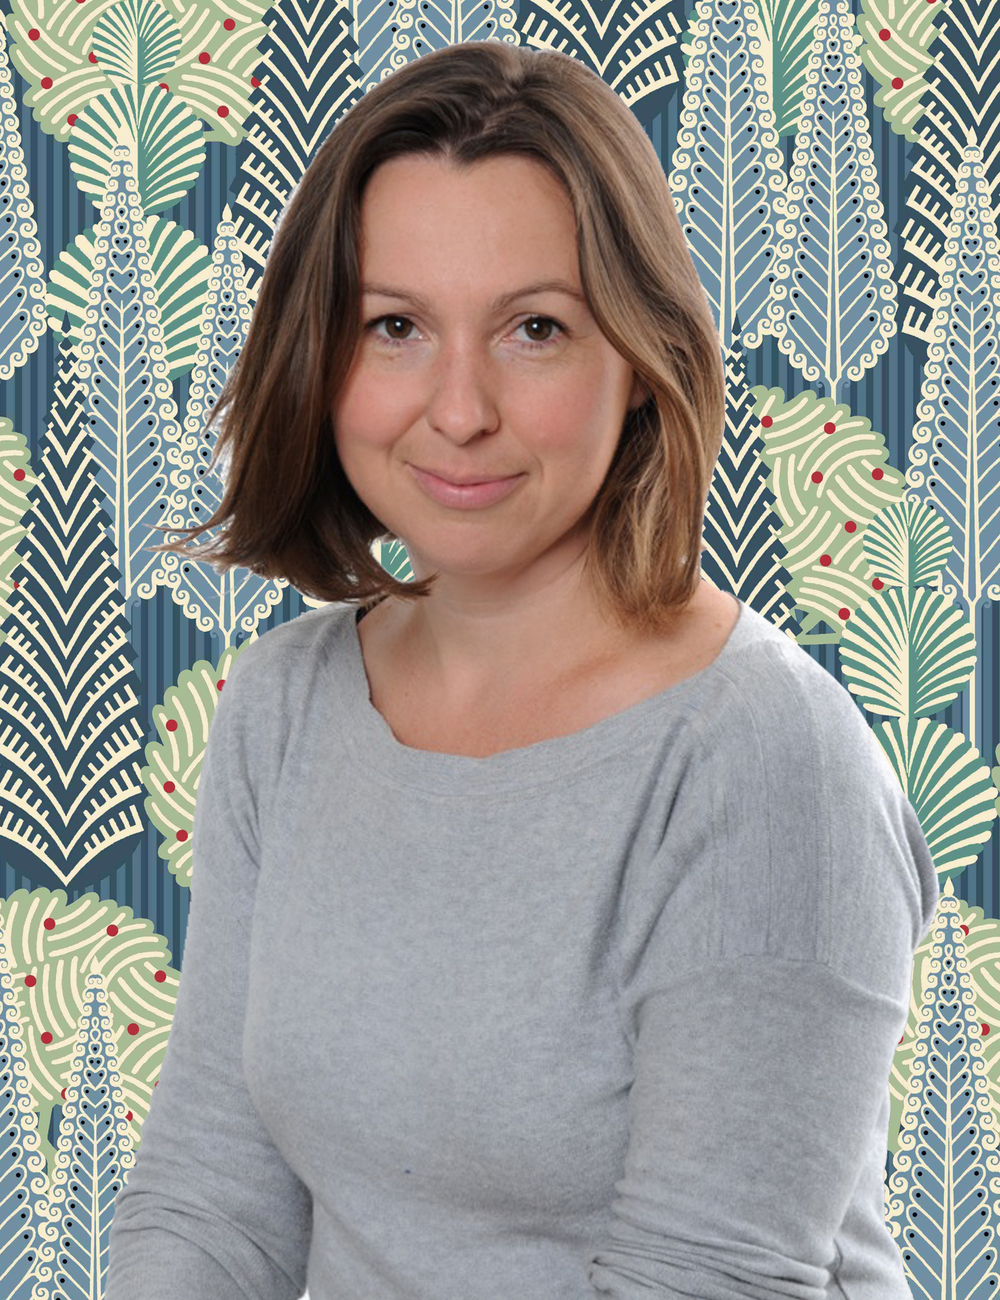 Pia Benham, Head of Fabric and Design at Heal's. The luscious background is the 'Trees' print by Cressida Bell